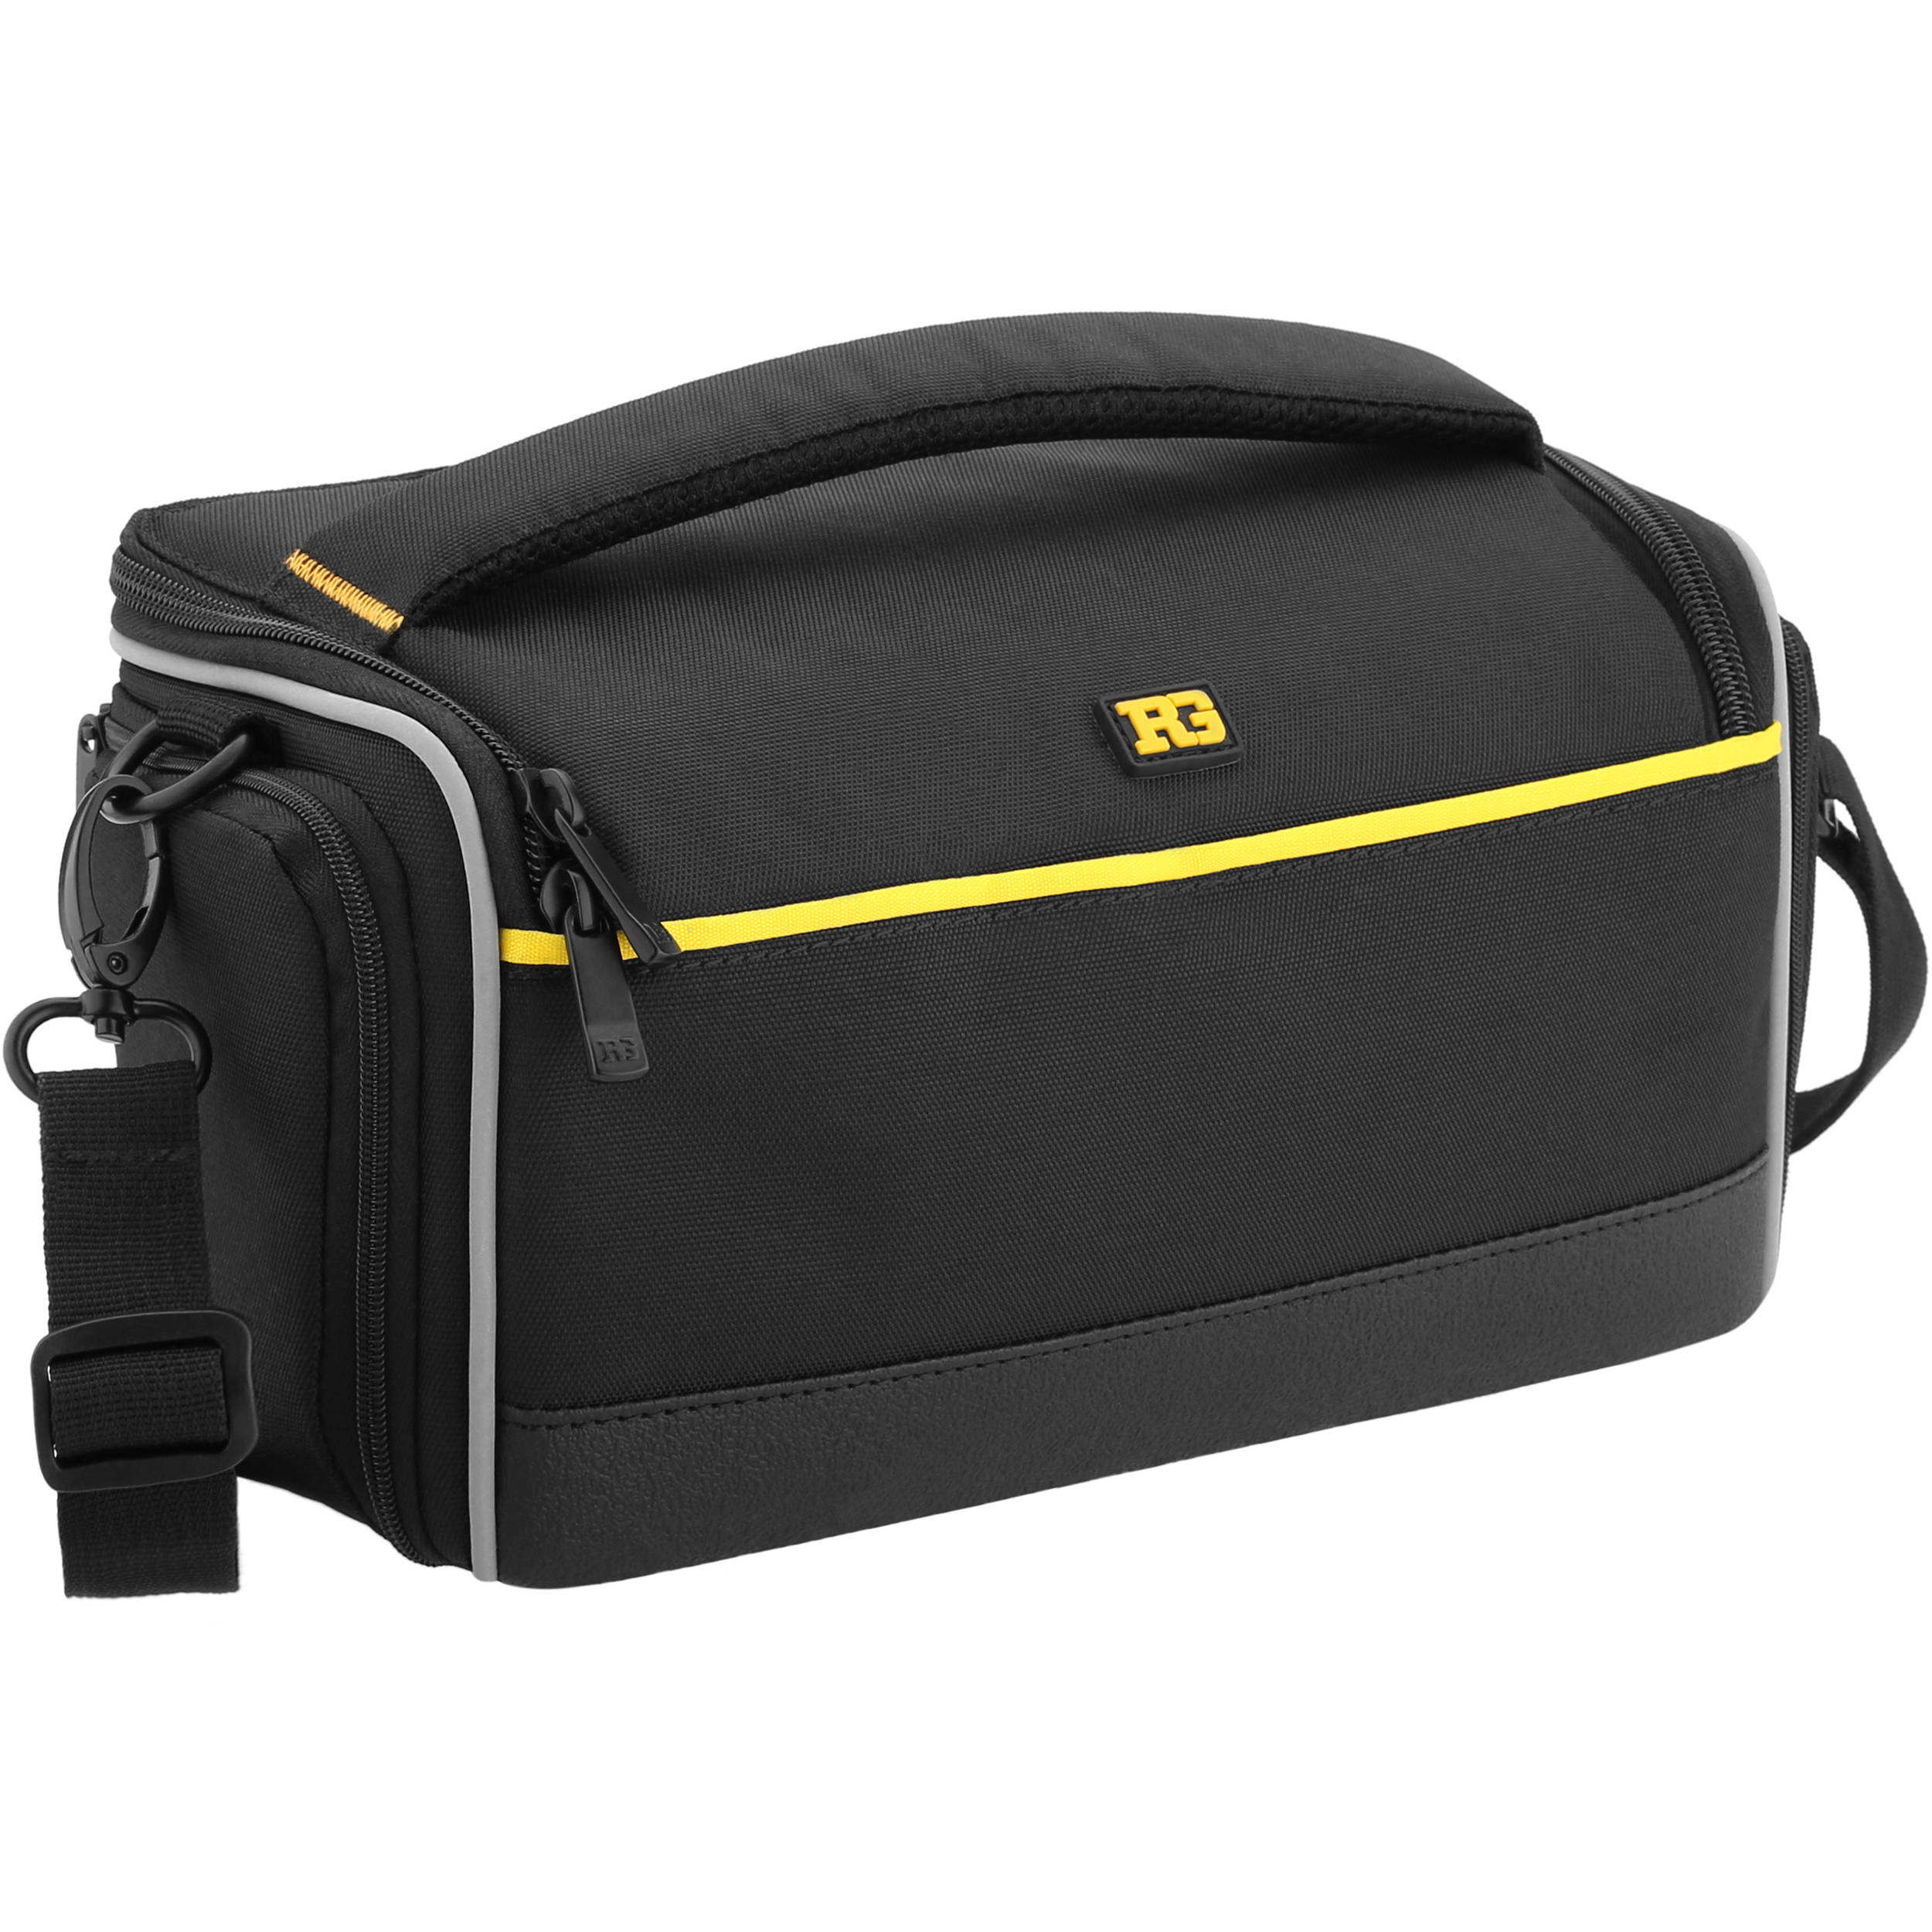 shoulder bag for camera